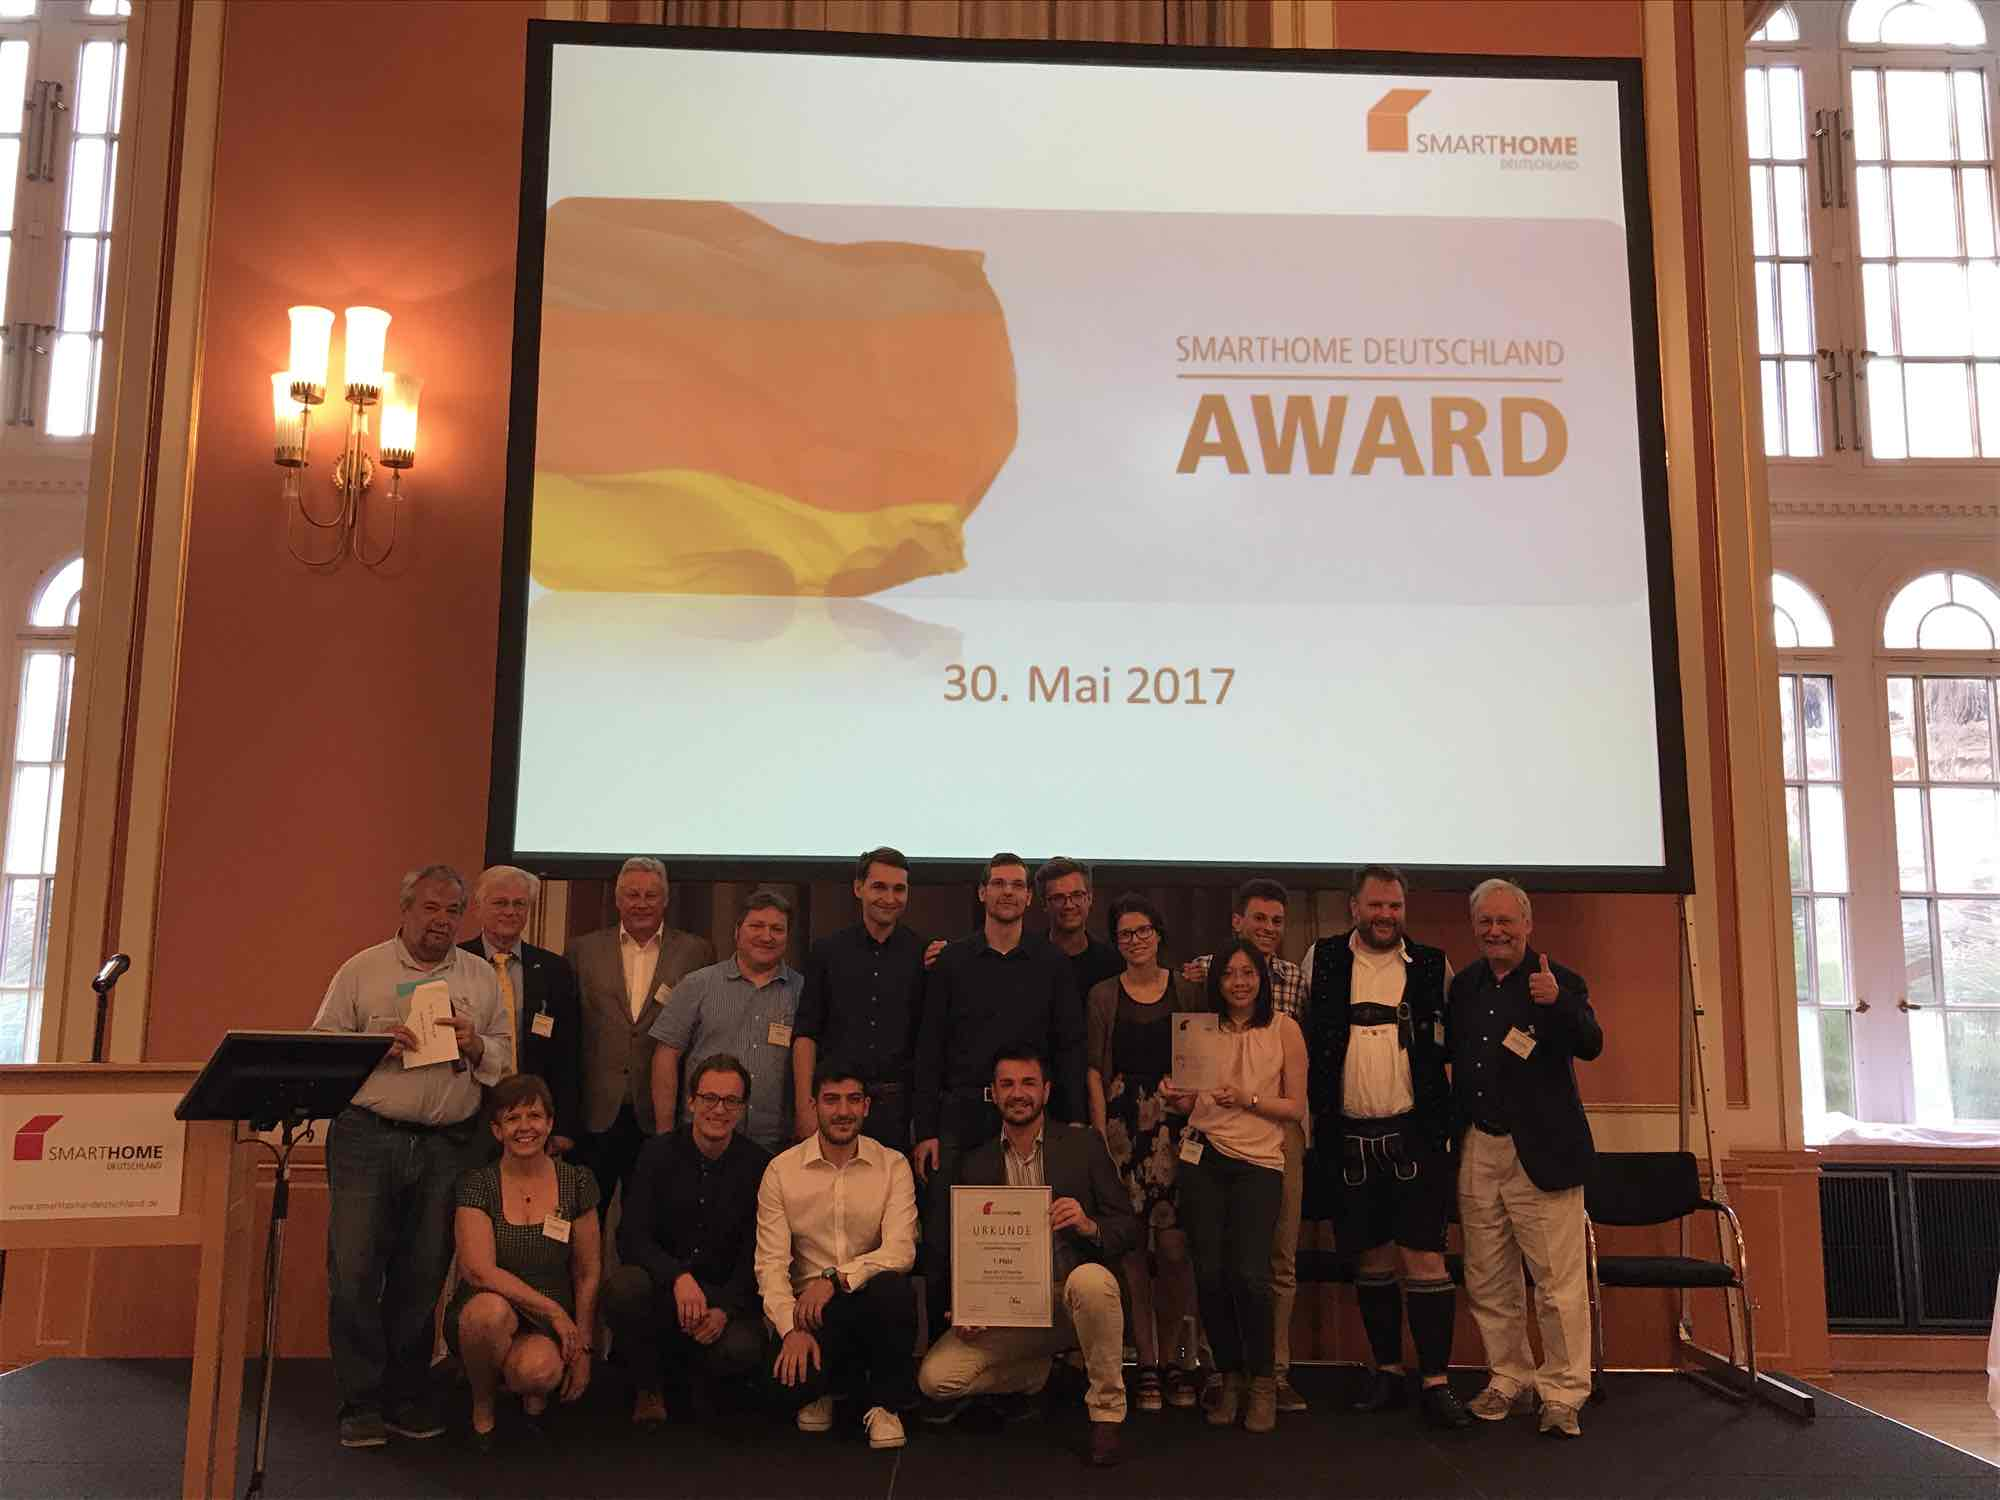 iPraktikum Team got First Place at SmartHome Deutschland Award 2017